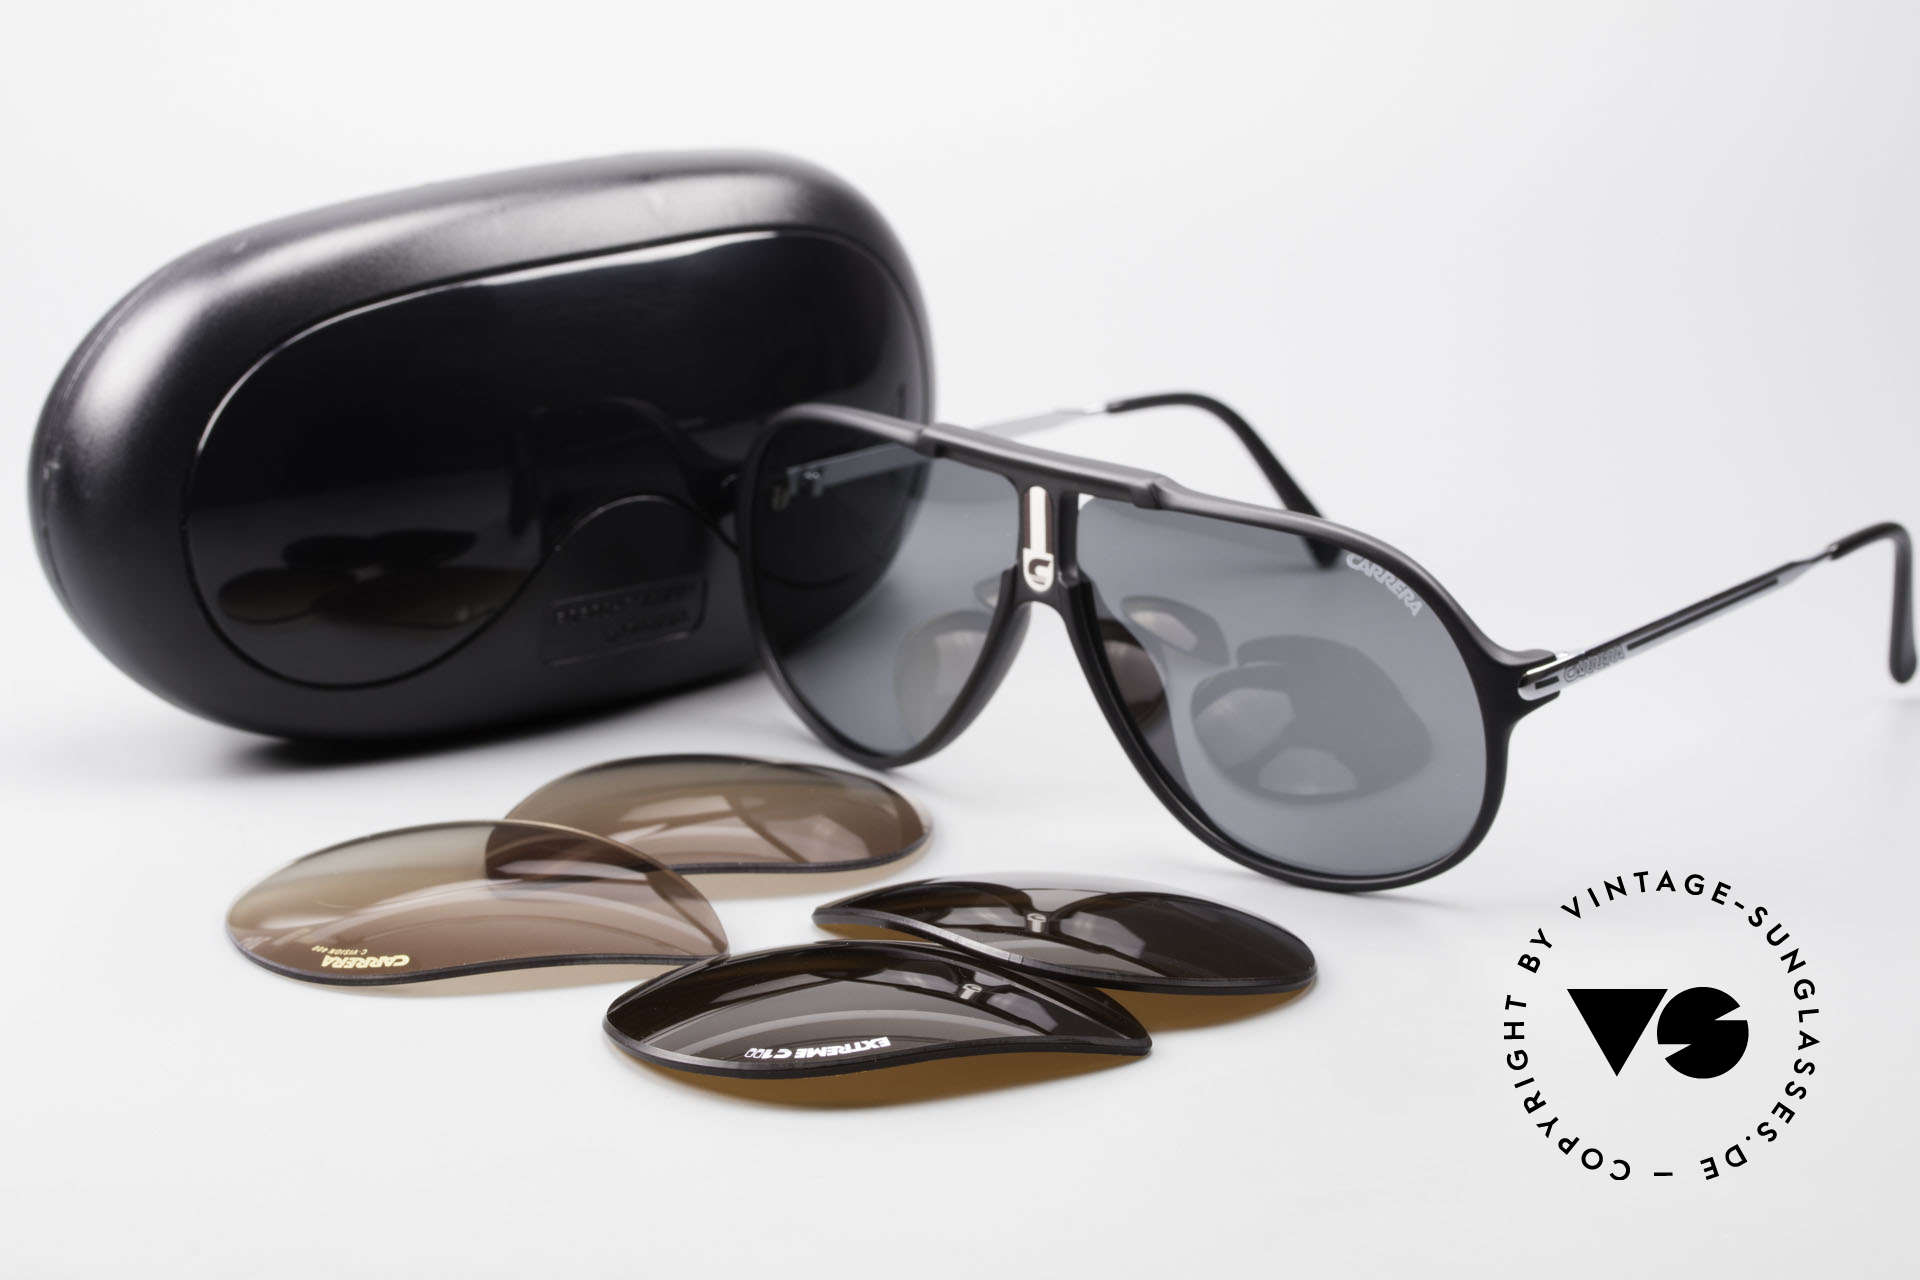 Carrera 5590 80's 90's Polarized Sunglasses, NO RETRO SHADES, but an app. 30 years old ORIGINAL!, Made for Men